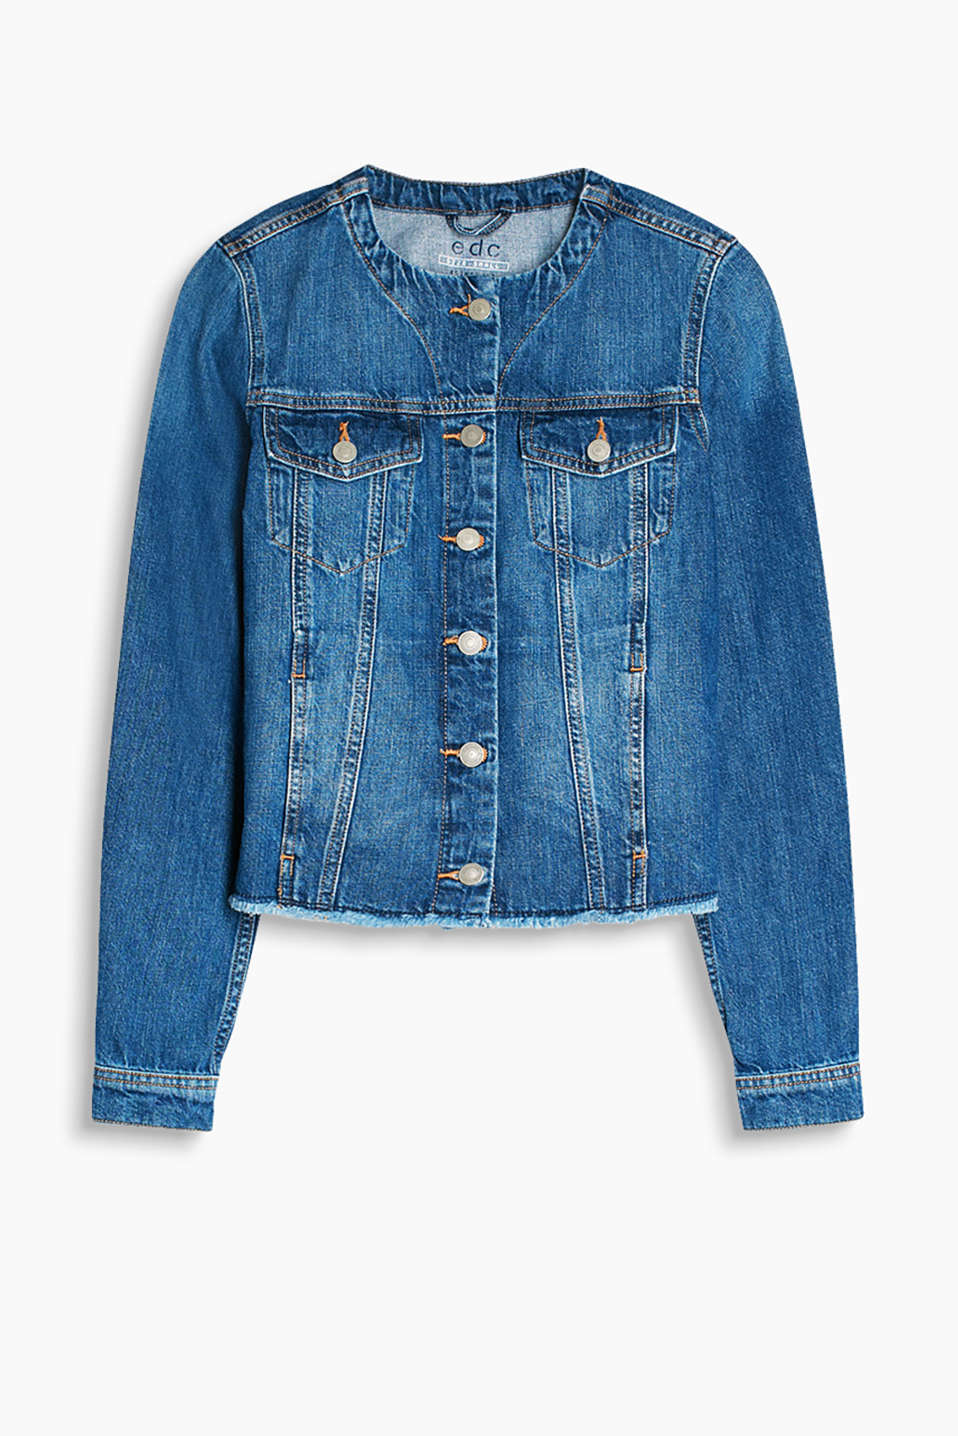 Denim jacket with a casual garment wash and a round neckline and frayed hem, 100% cotton